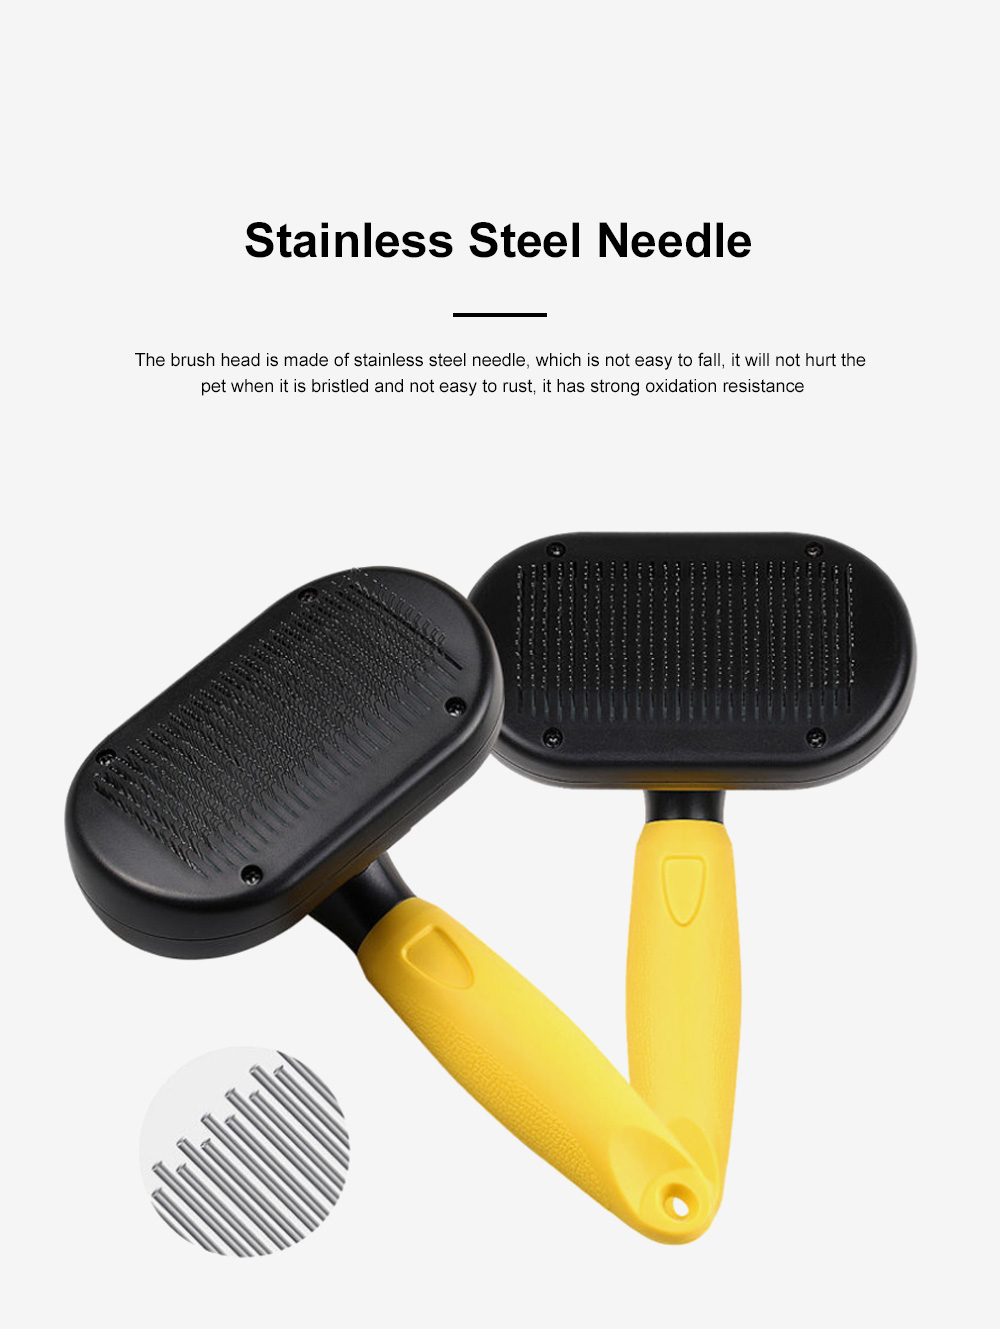 Pet Comb Household Automatic Telescopic Opening Beauty Hair Removal Brush Stainless Steel Needle Pet Hair Comb For Pets 2